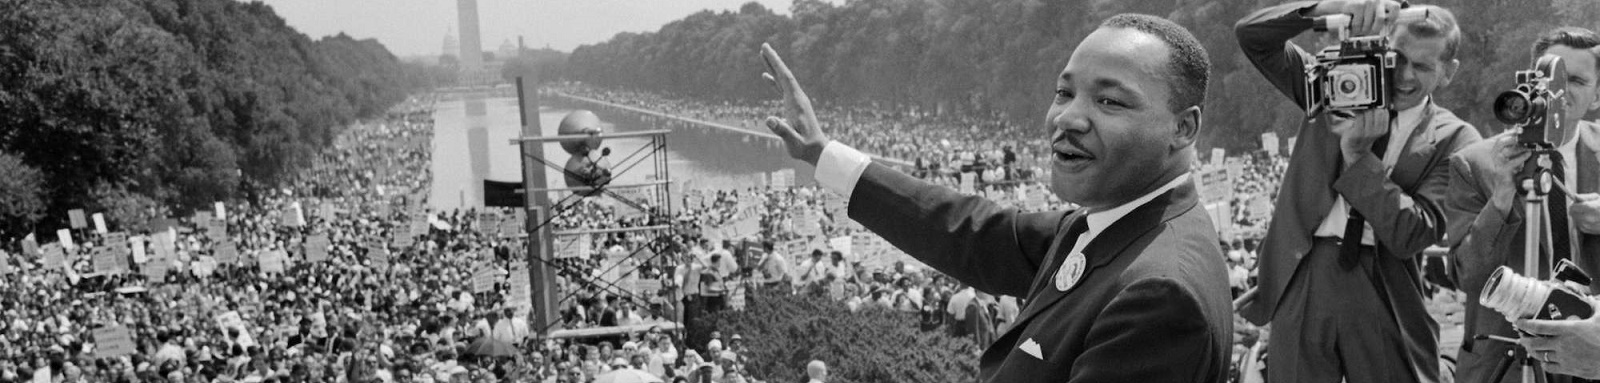 Martin Luther King, Jr. at the March on Washington, August 1963. He is smiling. Newsmen are taking photographs.